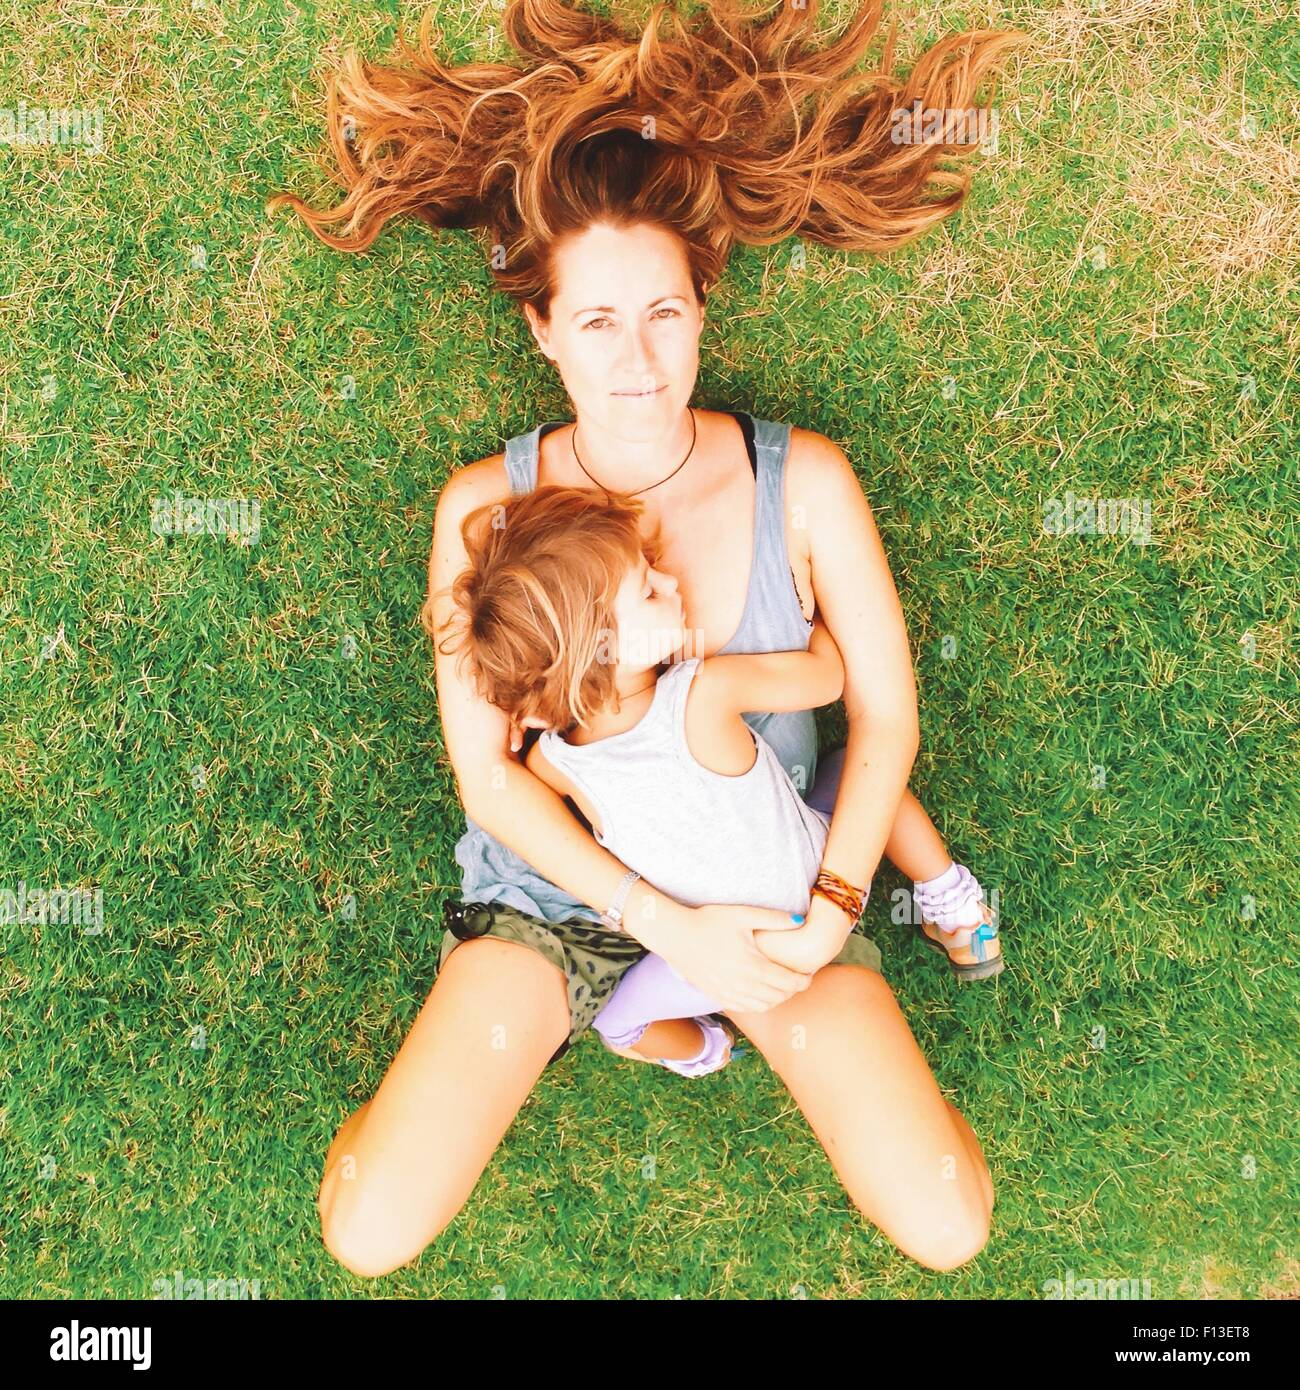 Overhead view of a woman lying on grass with her daughter - Stock Image